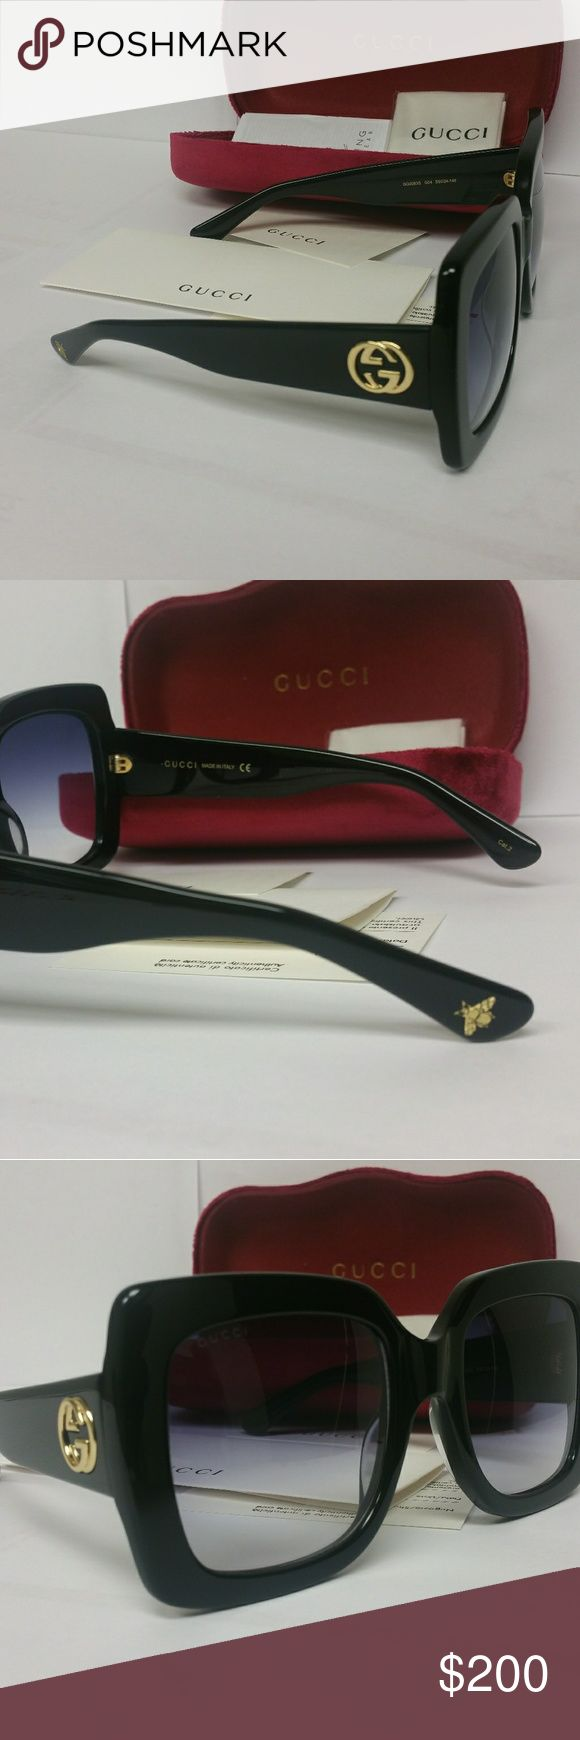 Authentic GUCCI oversized women sunglasses Gucci Women's Sunglasses  model- GG0083S-001 55 Comes with full package 100% Authentic GUCCI large Frame. Ships same day from florida. Gucci Accessories Sunglasses